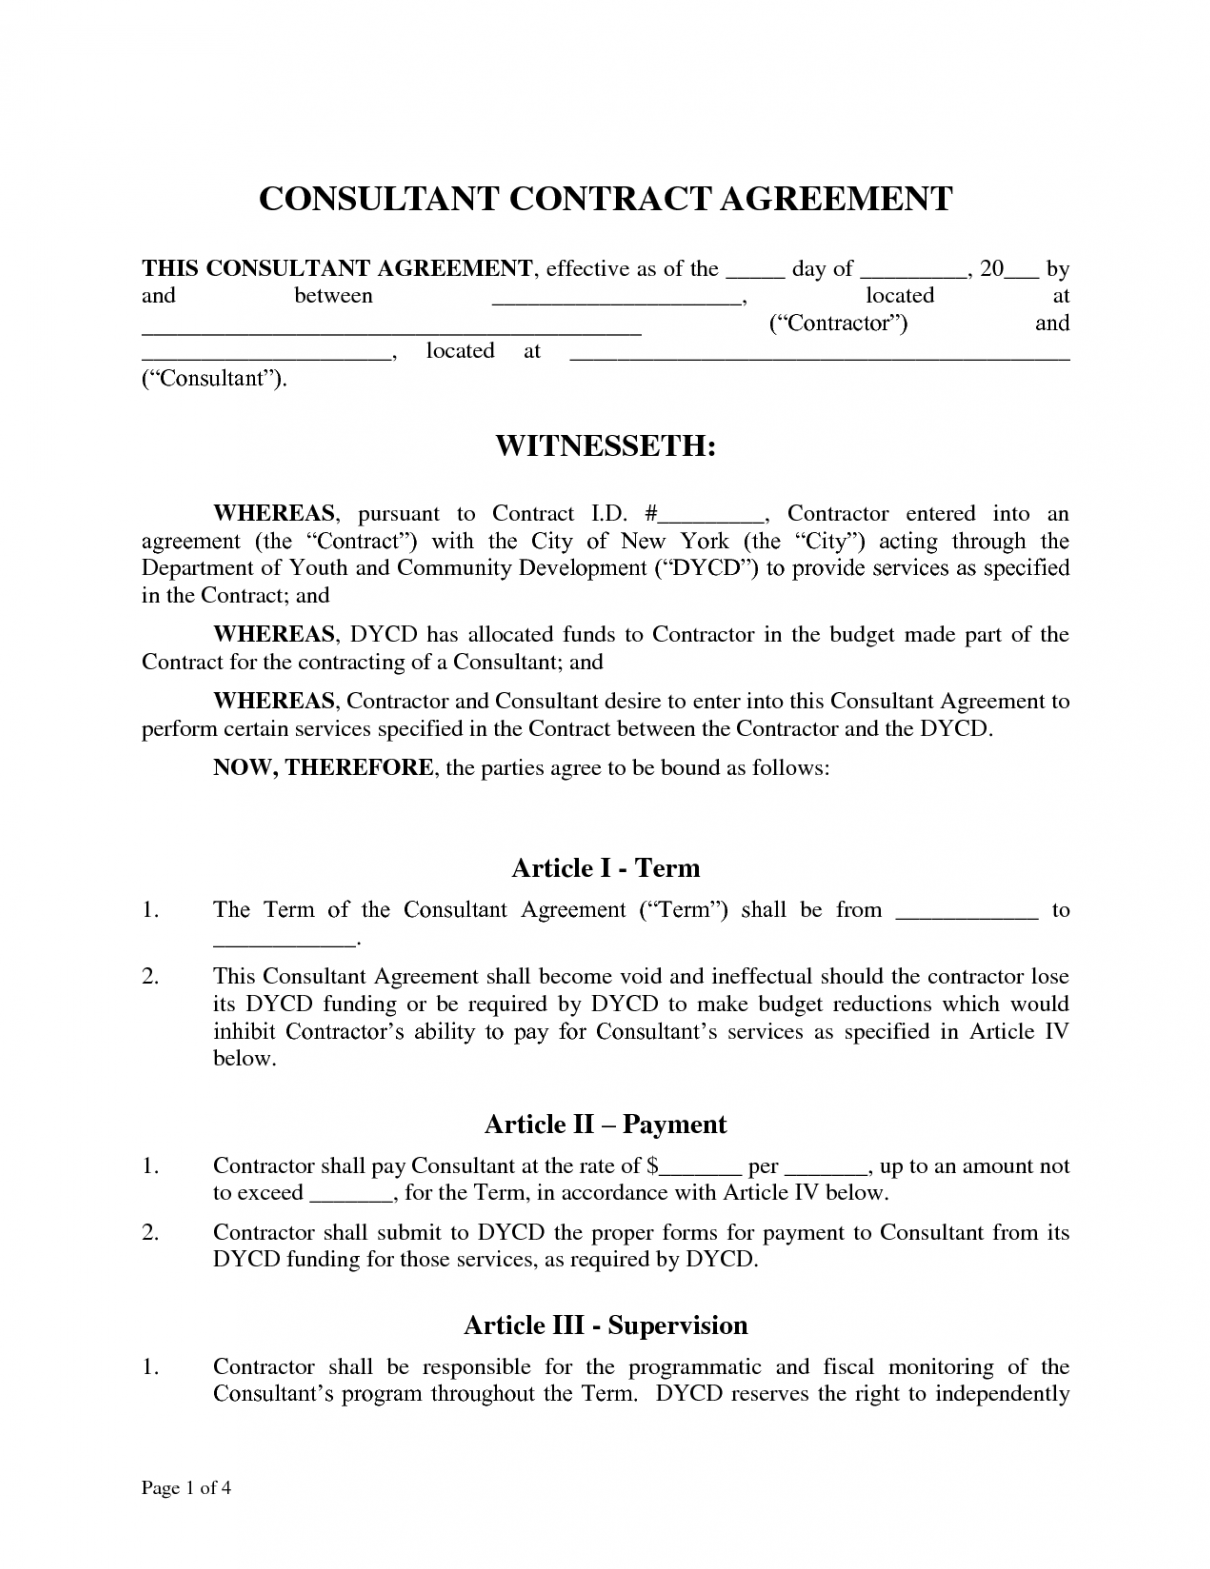 Consultant Contract Template | Get A Marketing Consultant Contract Template Bonsai